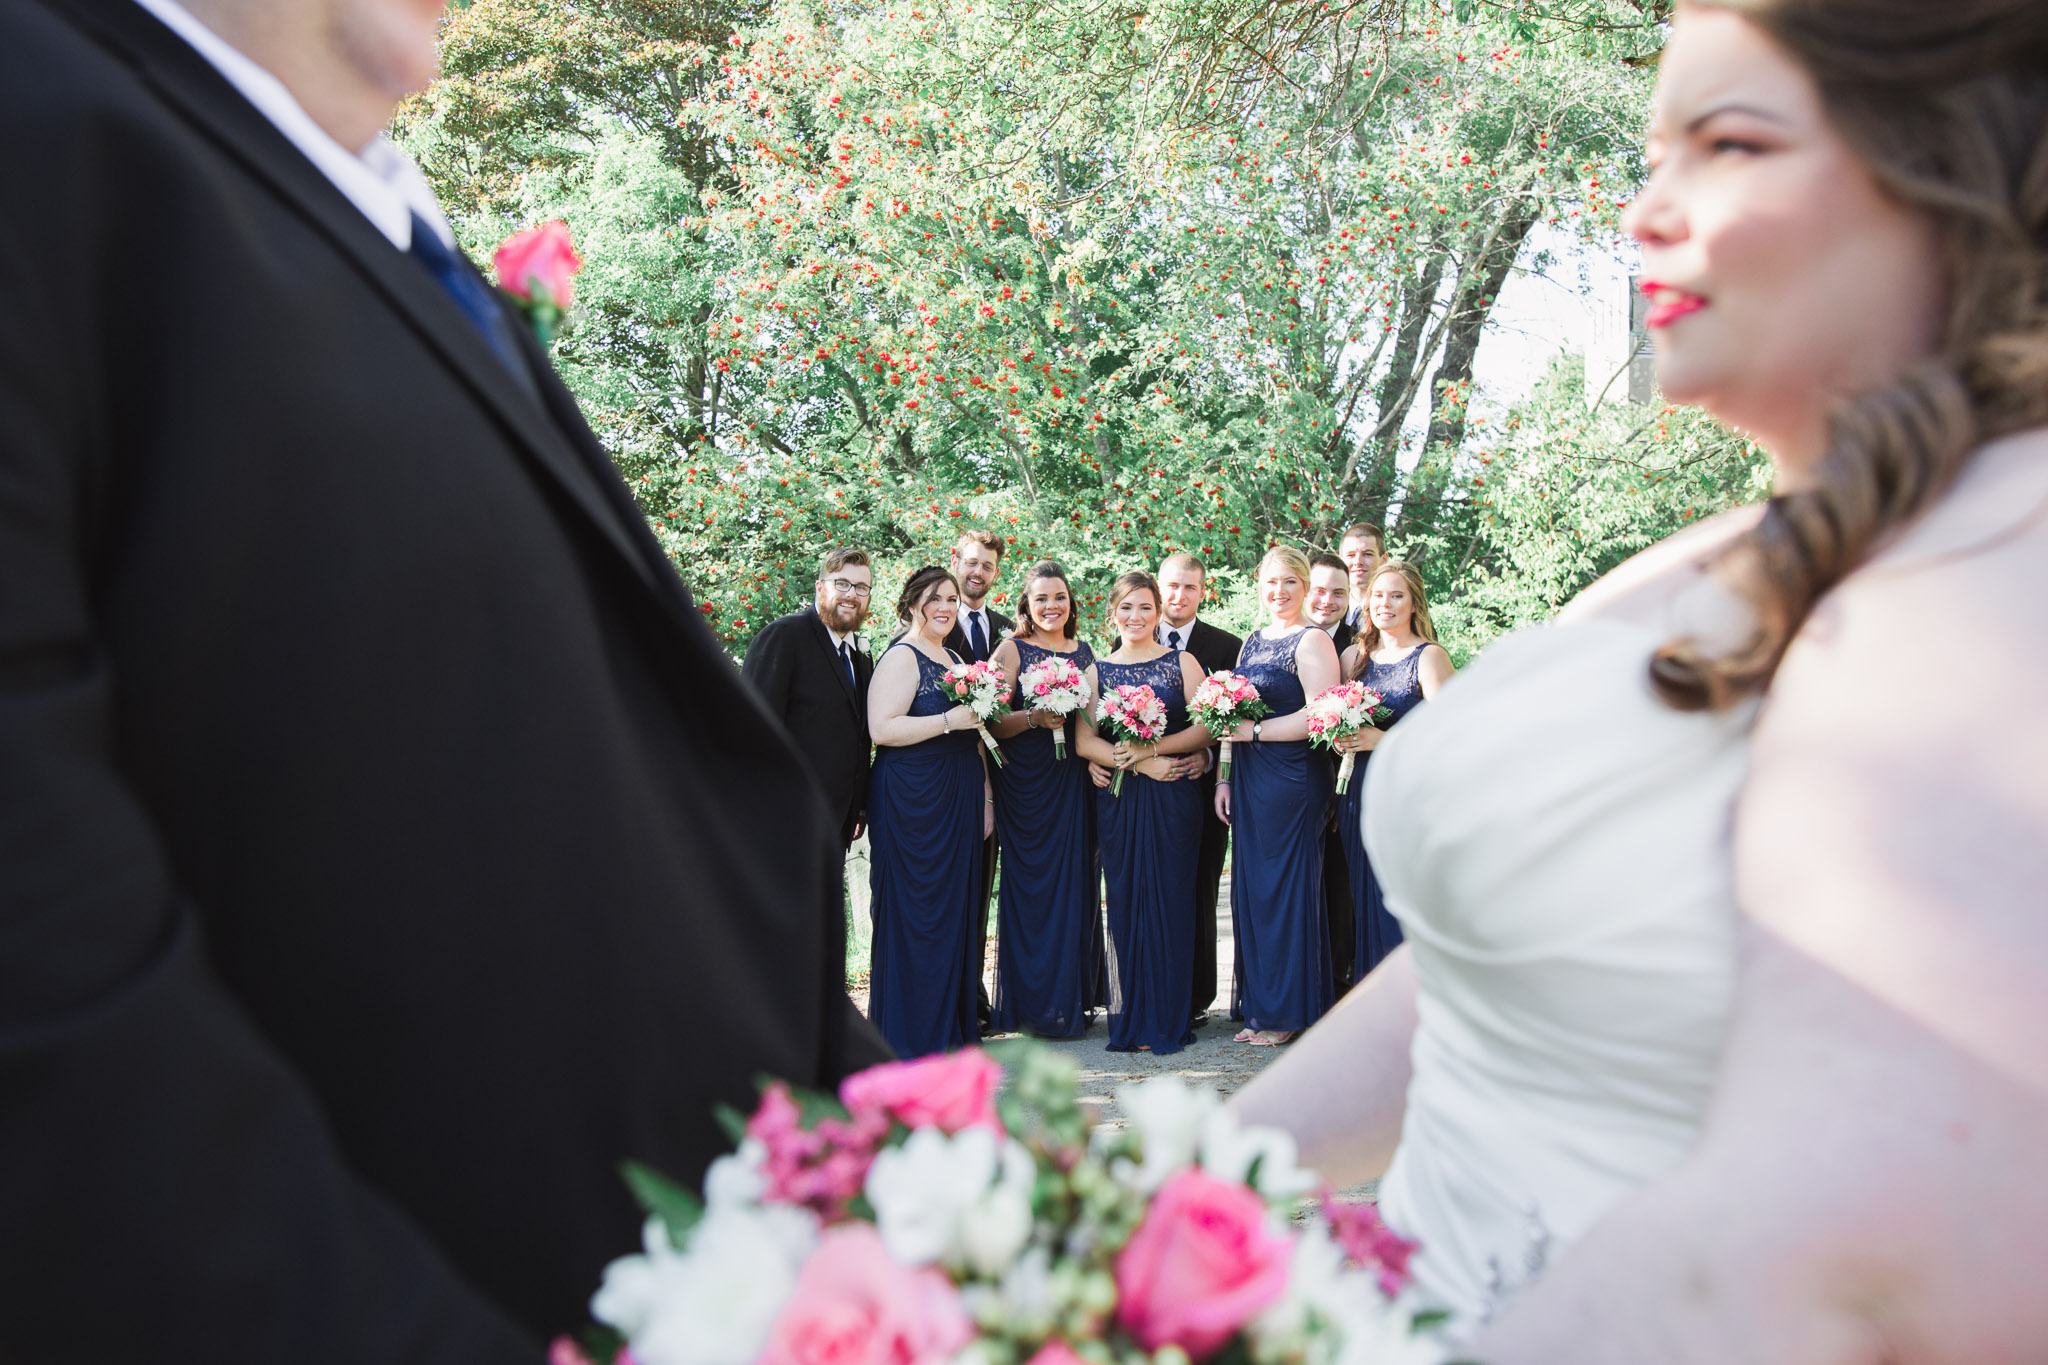 Image of bride and groom looking at each other with bridal party posing at the background